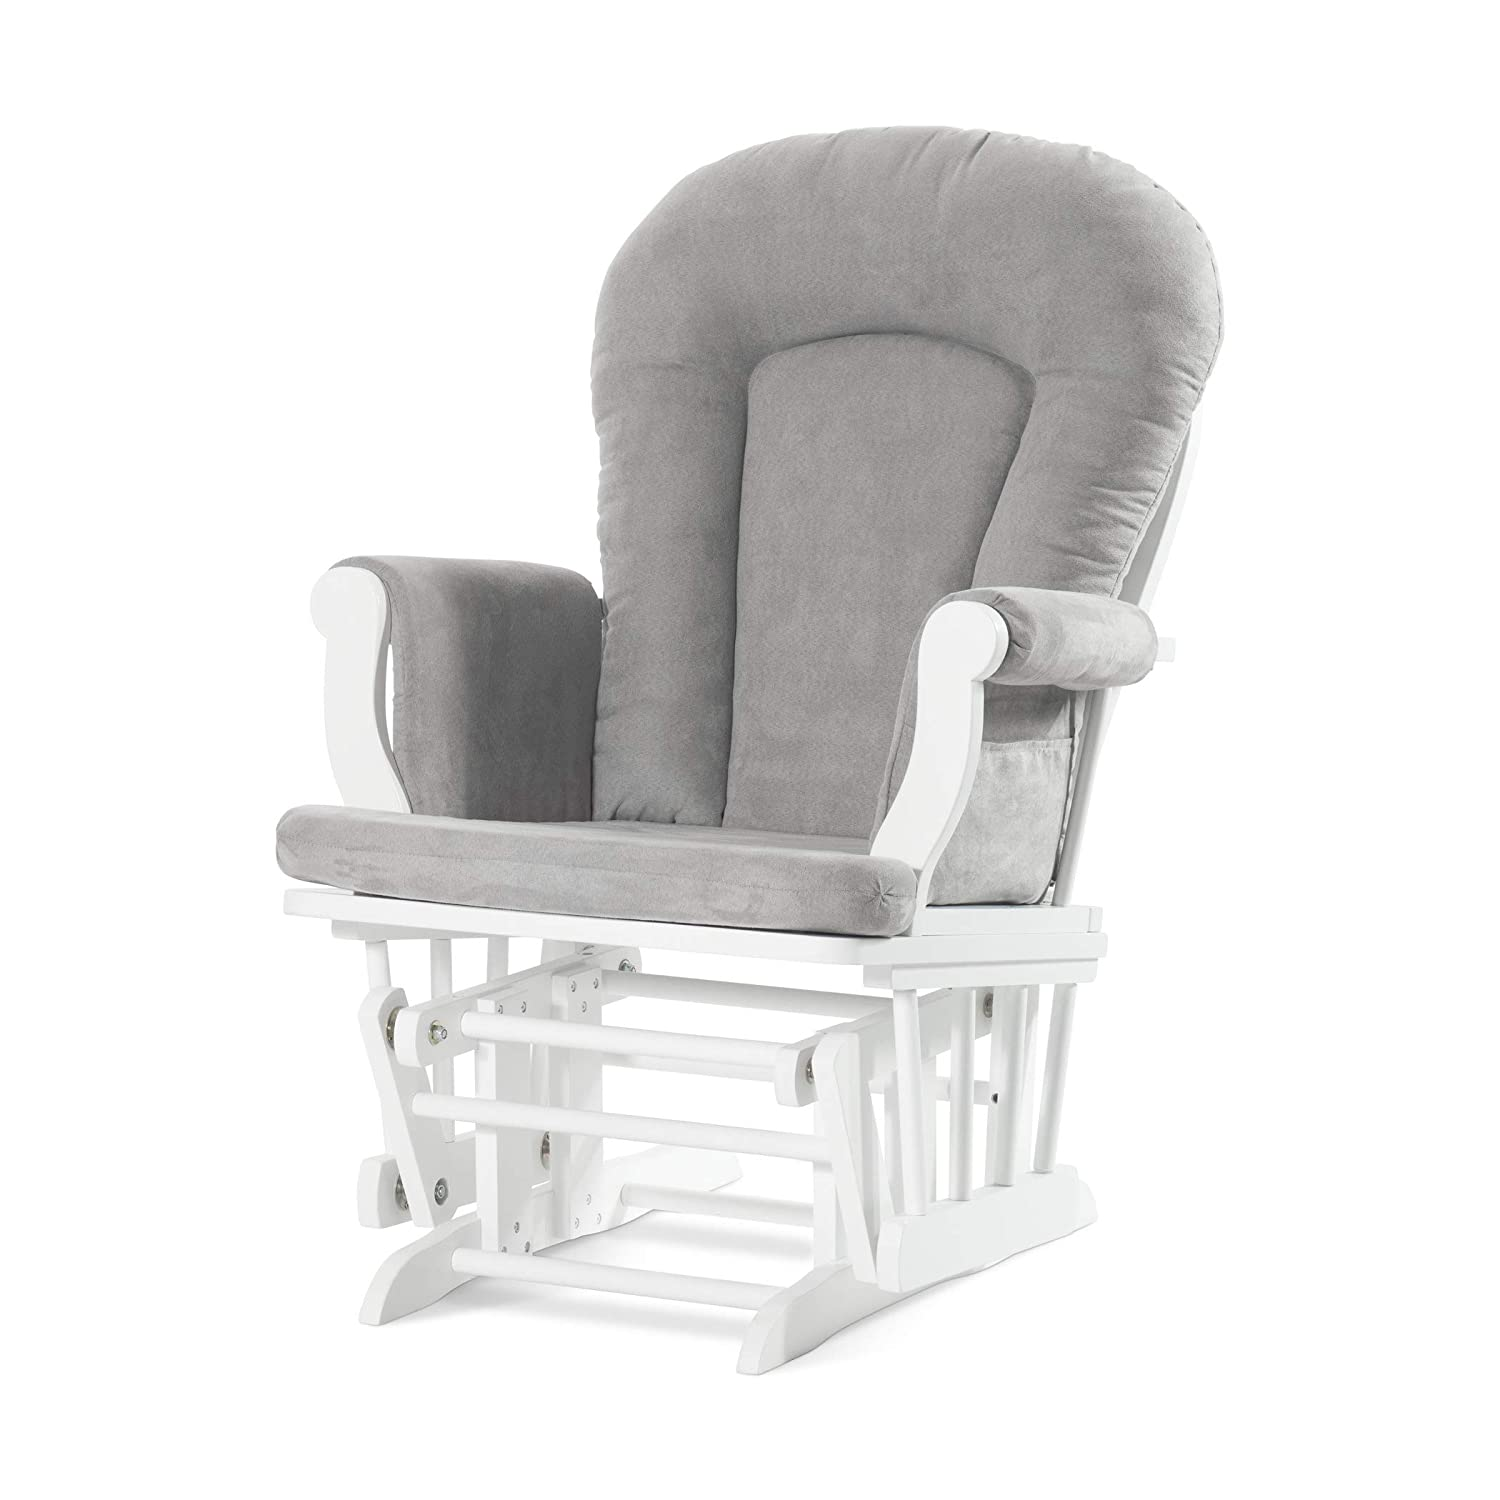 Fantastic Forever Eclectic By Child Craft Cozy Glider And Ottoman Matte White With Light Gray Cushion Inzonedesignstudio Interior Chair Design Inzonedesignstudiocom